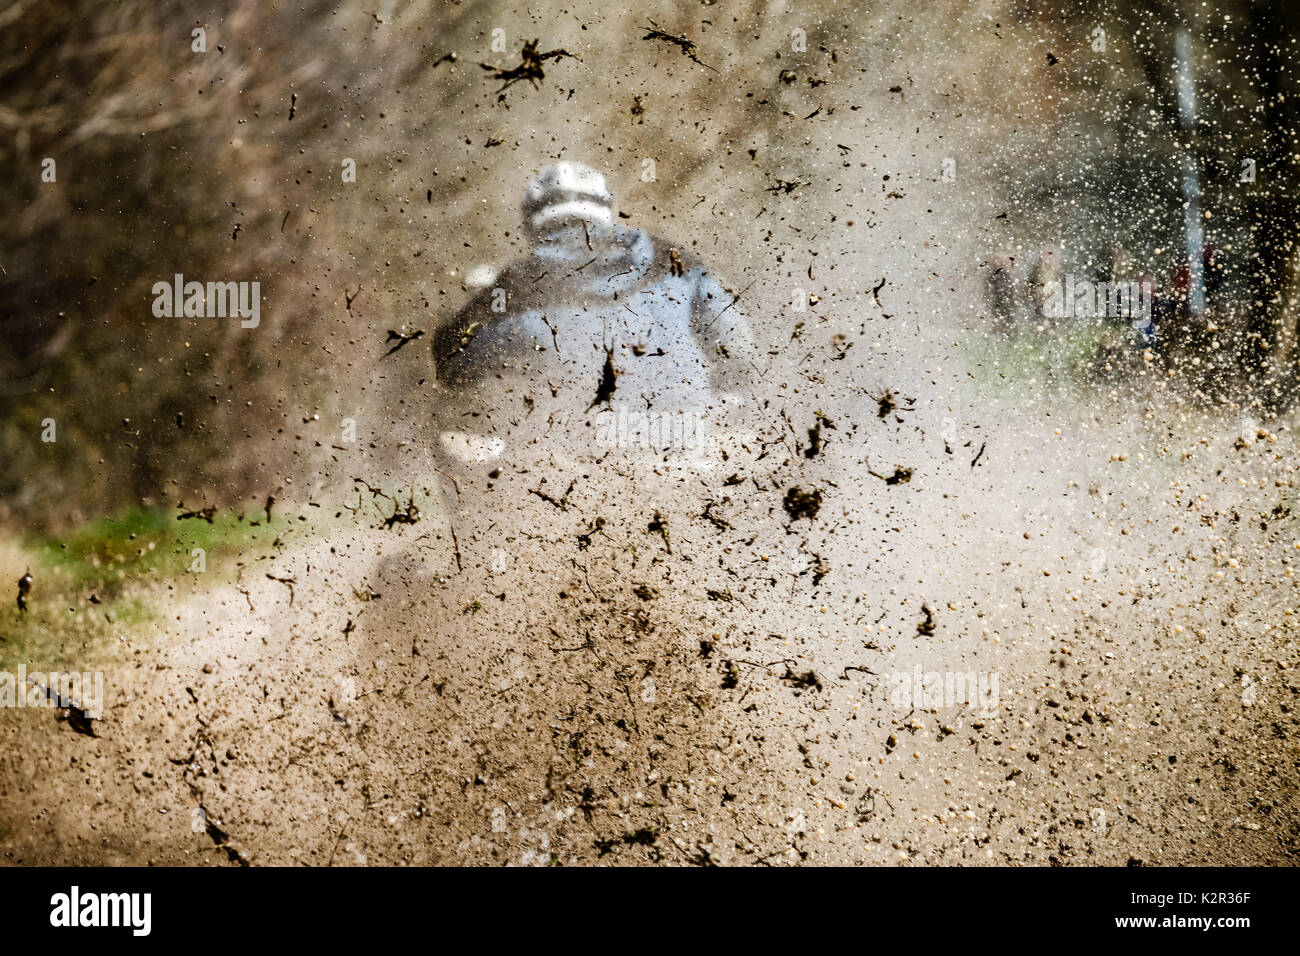 Off road bike on competition - Stock Image